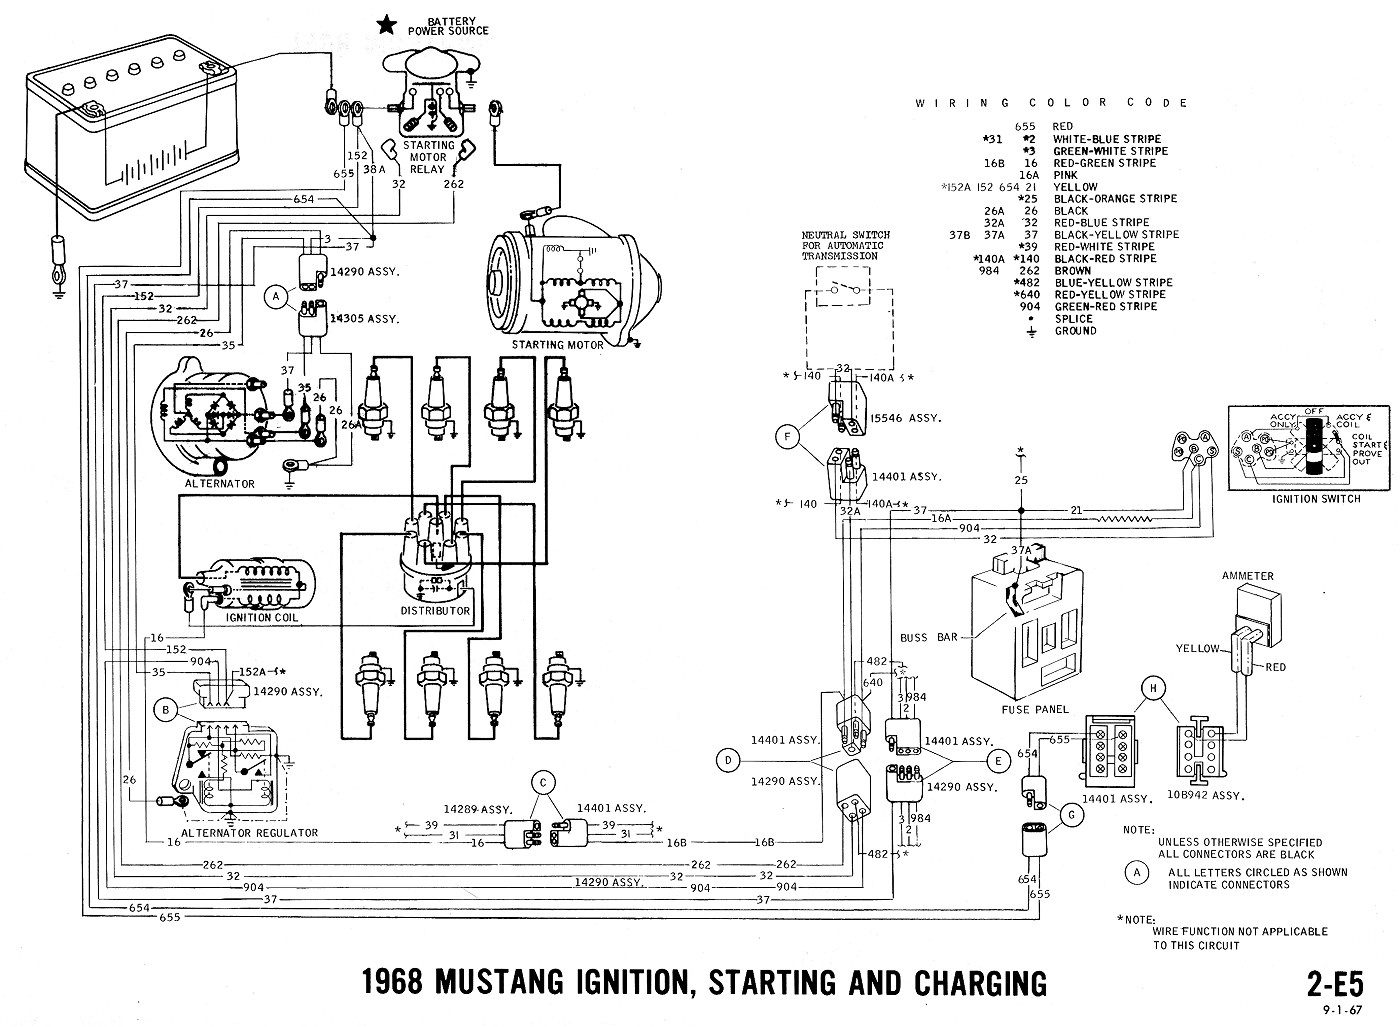 1968 mustang wiring diagrams evolving software rh peterfranza com mustang alternator wiring harness 66 mustang alternator wiring